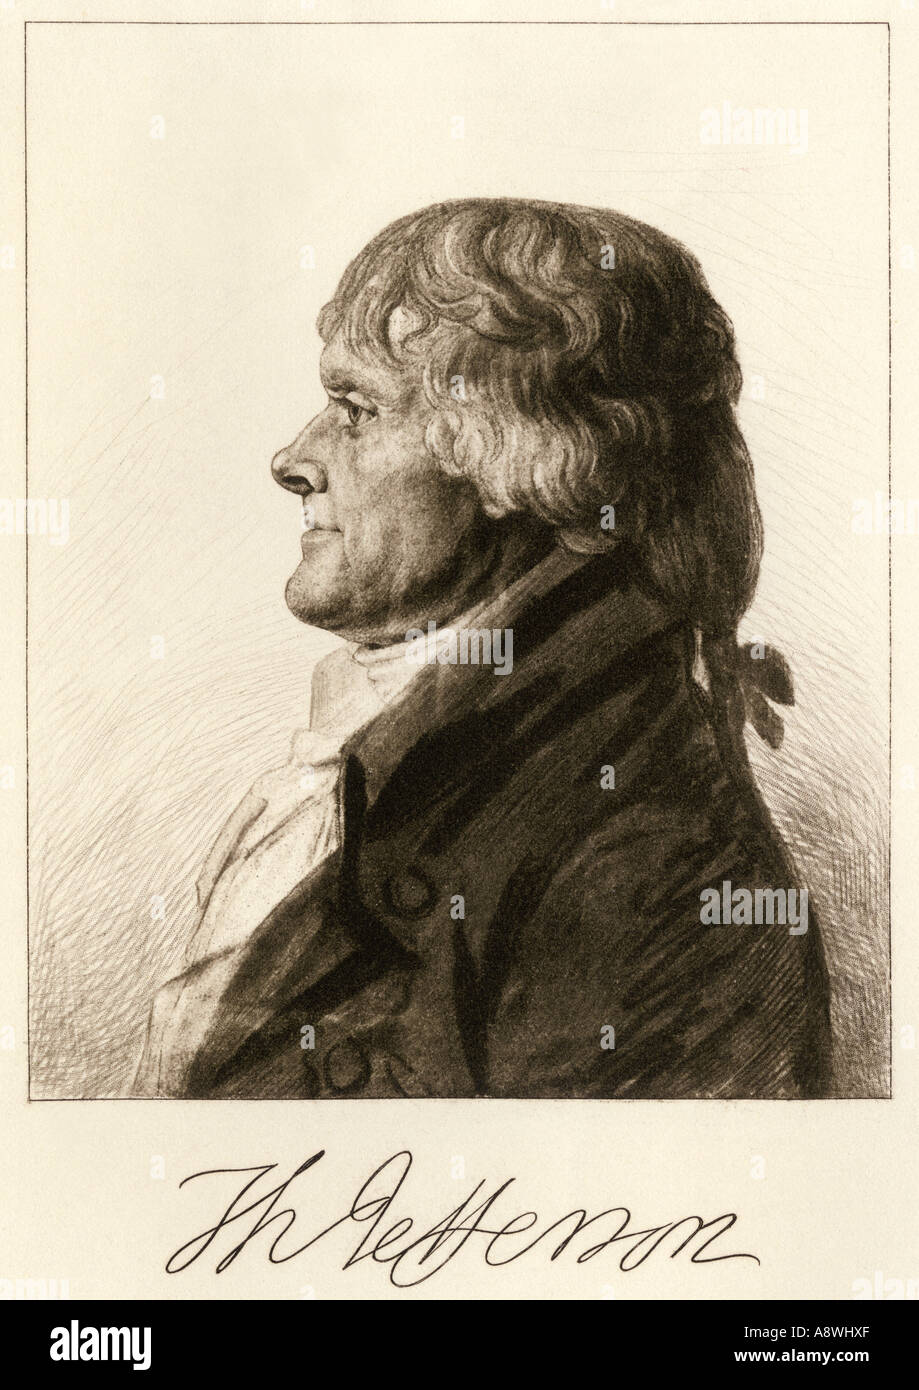 f8b28fc1dad6 Thomas Jefferson profile with autograph. Photogravure reproduction of a  drawing